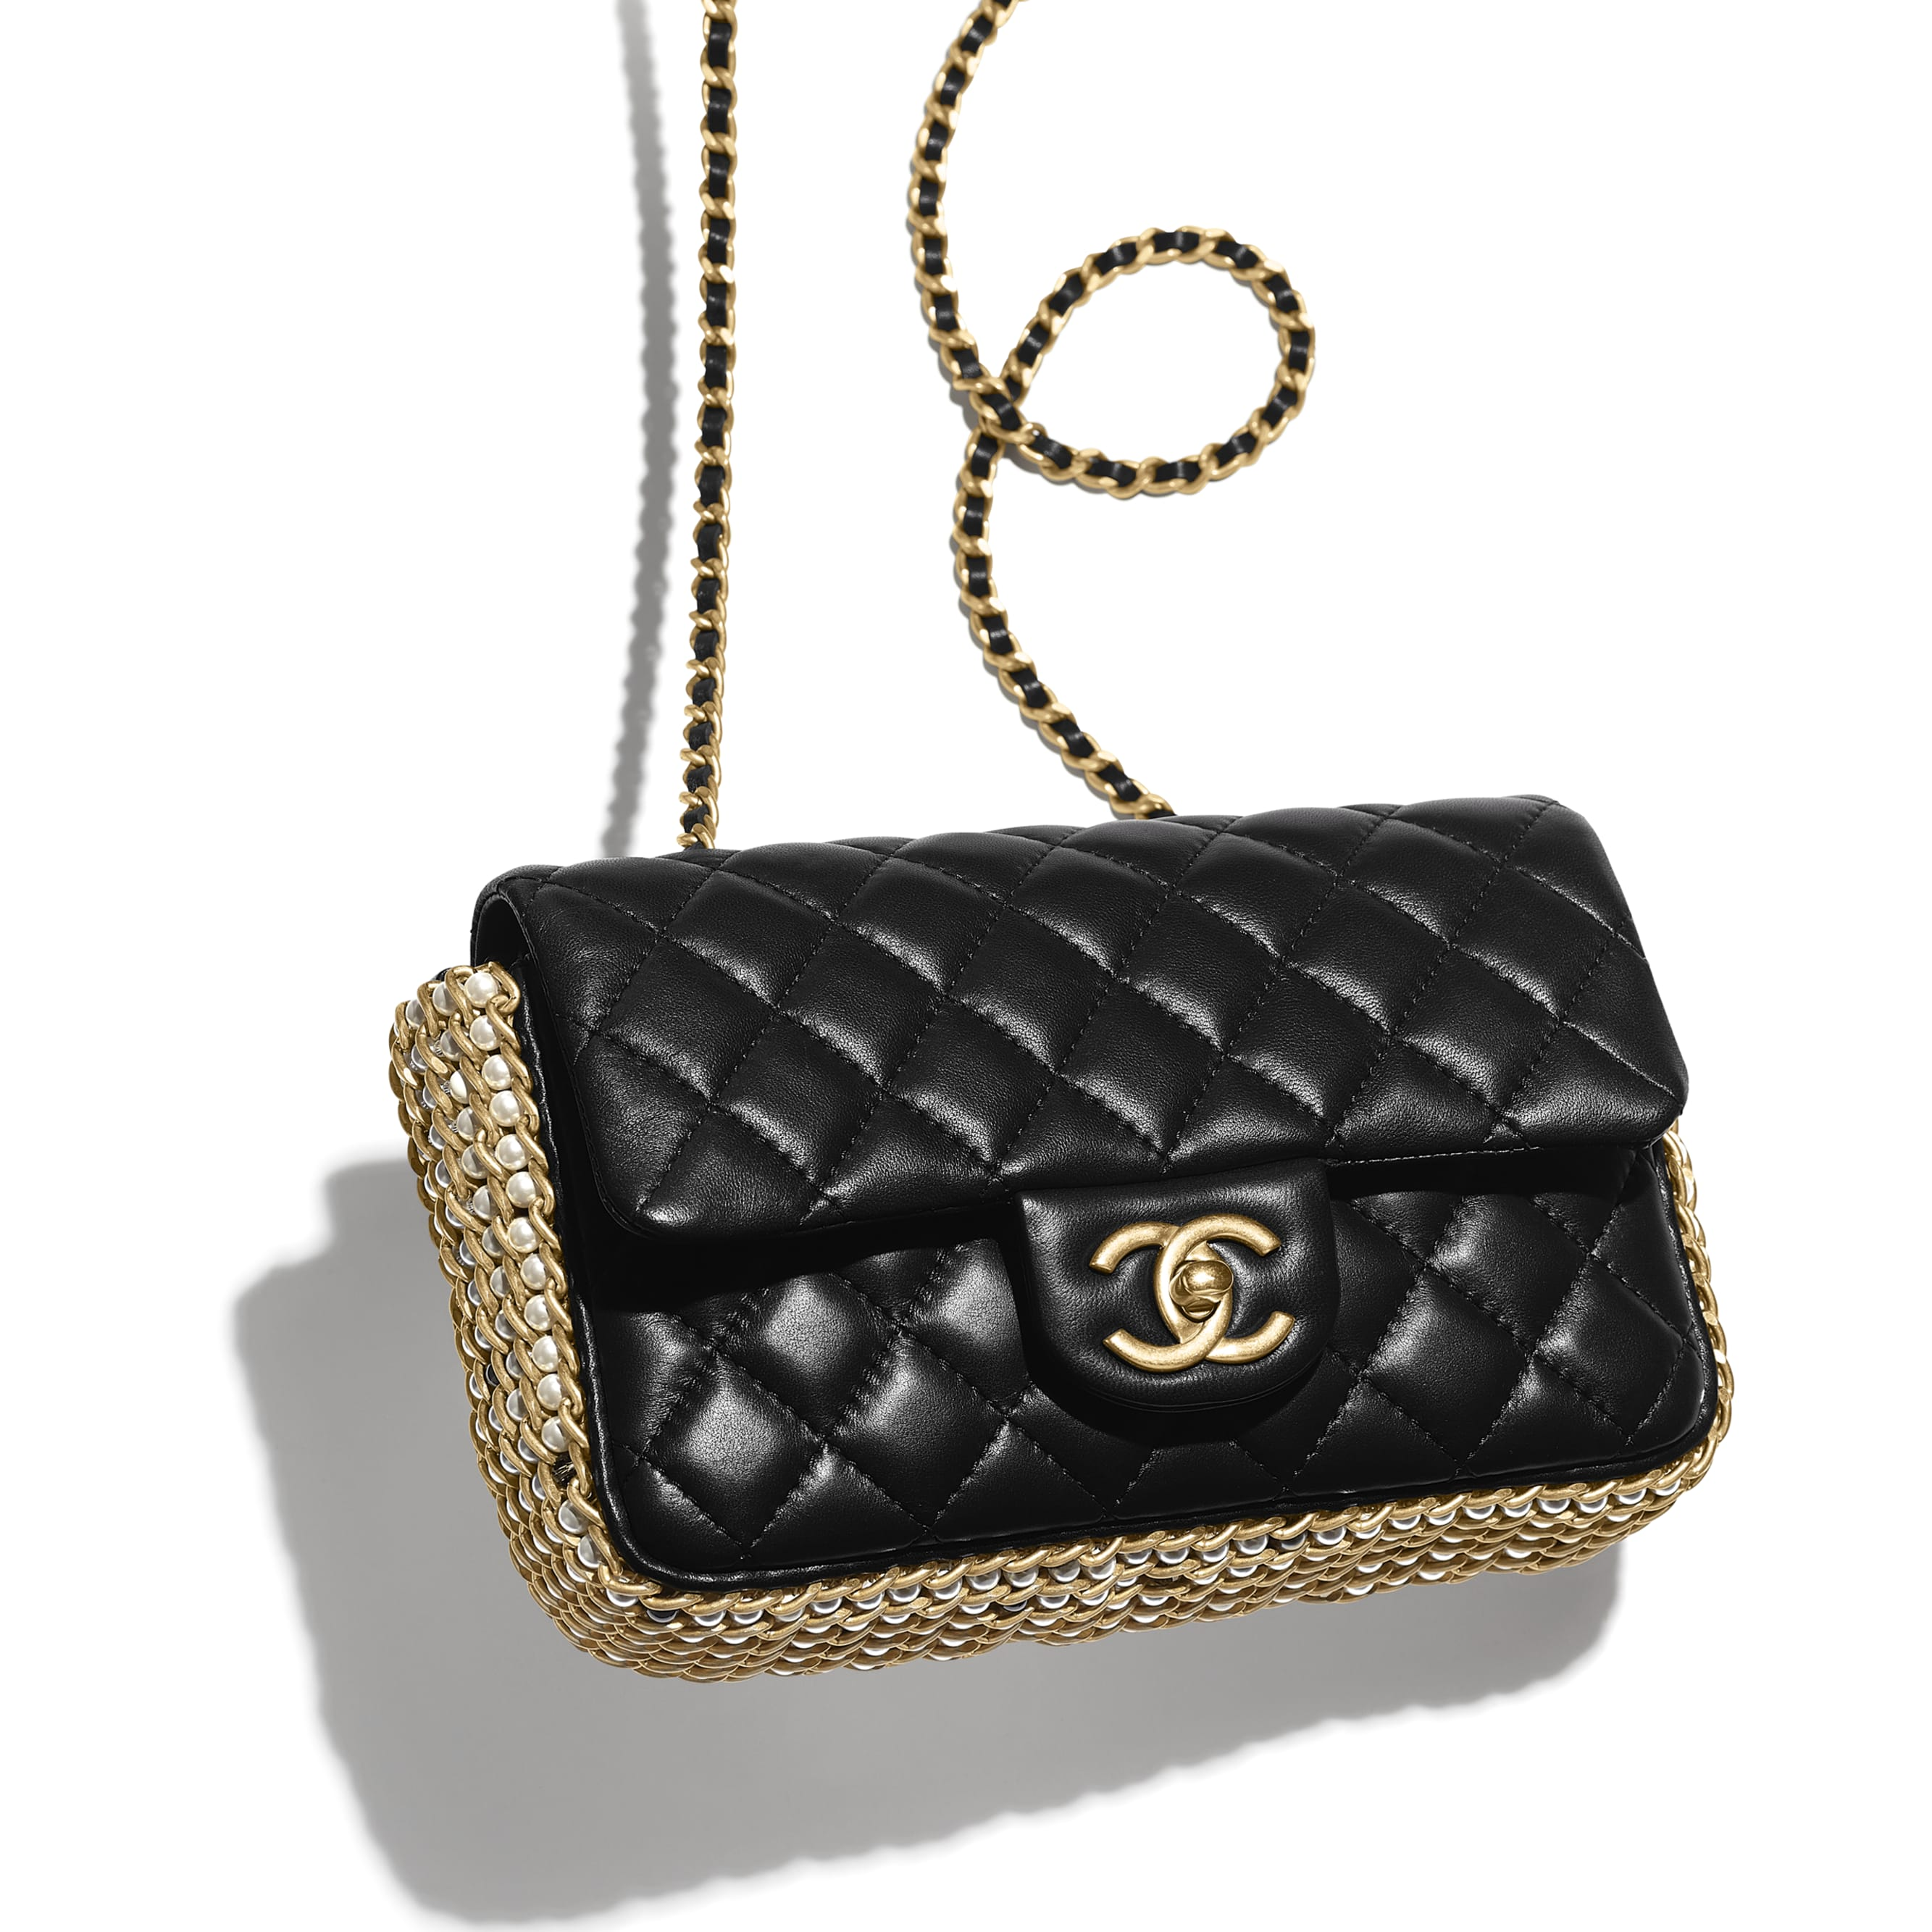 Flap Bag - Black - Lambskin, Imitation Pearls & Gold Metal - CHANEL - Extra view - see standard sized version